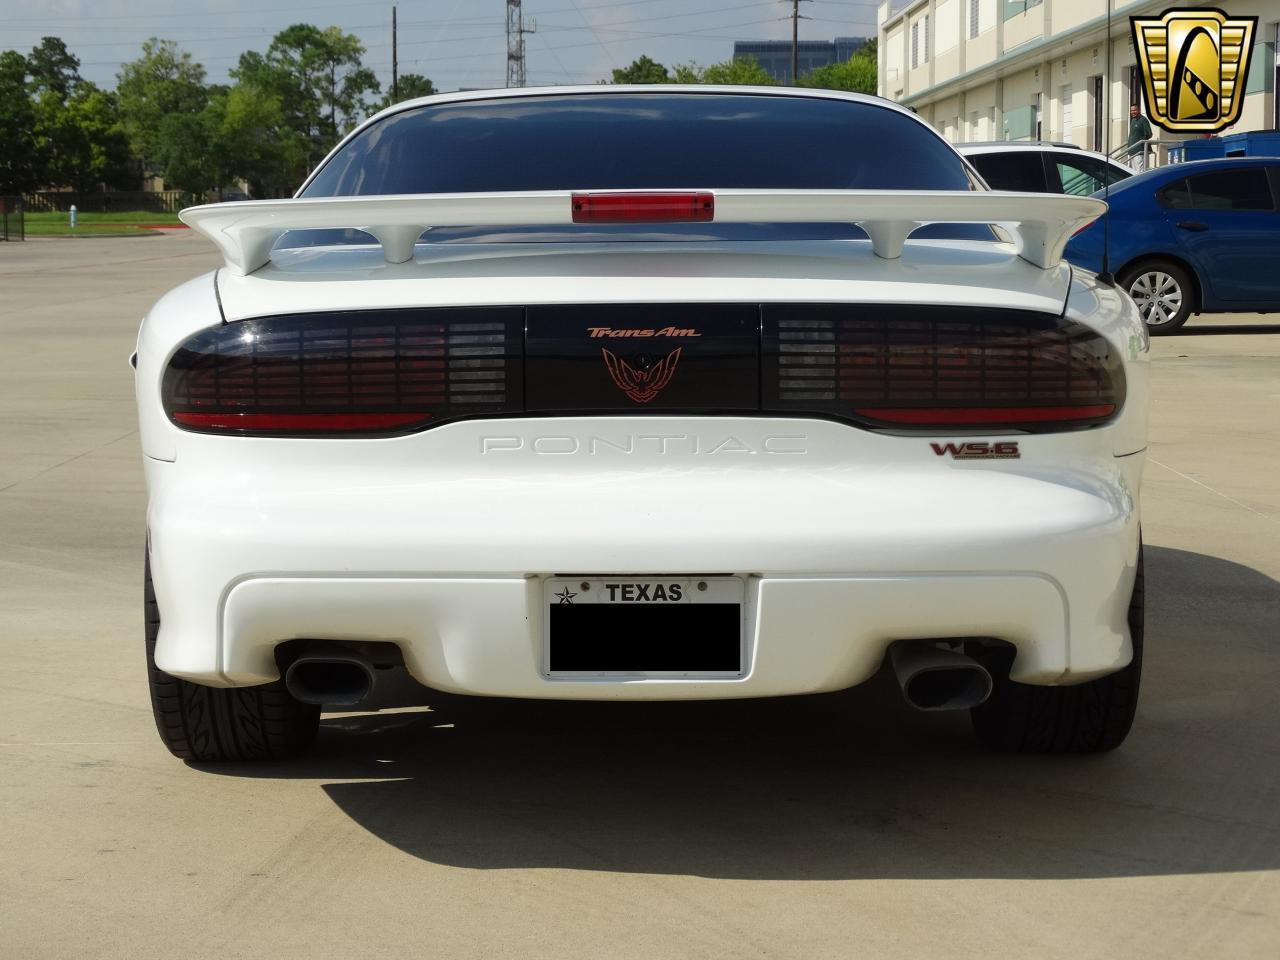 Large Picture of '96 Pontiac Firebird Trans Am - $16,995.00 Offered by Gateway Classic Cars - Houston - KEI4